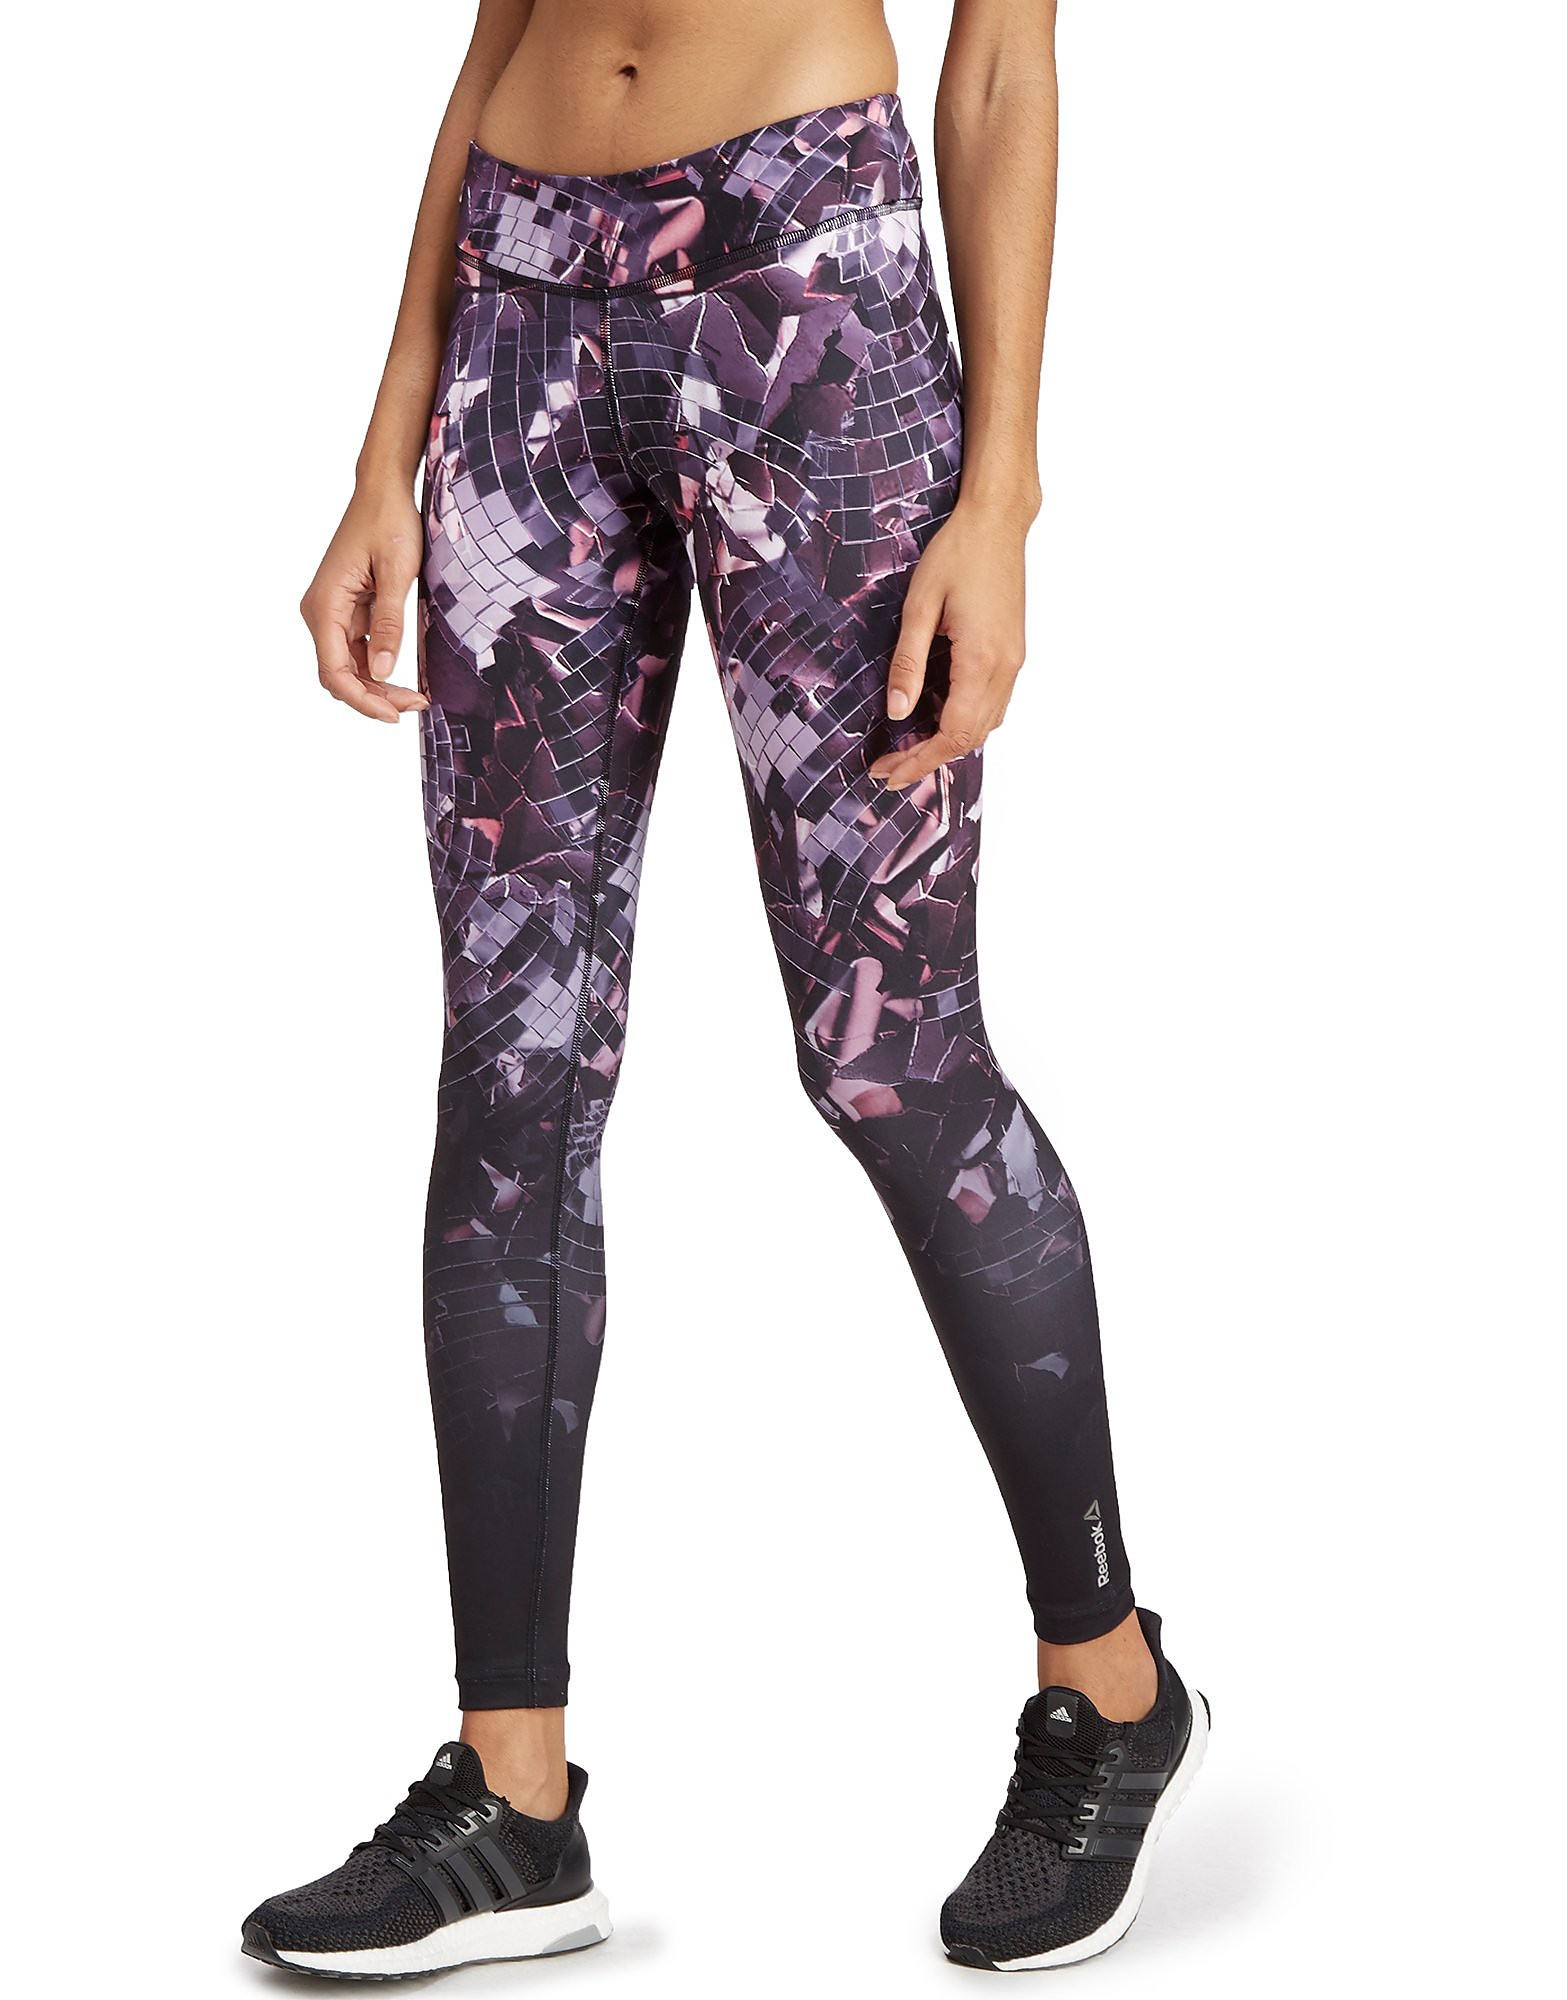 Reebok Dance Shattered Glam Tights